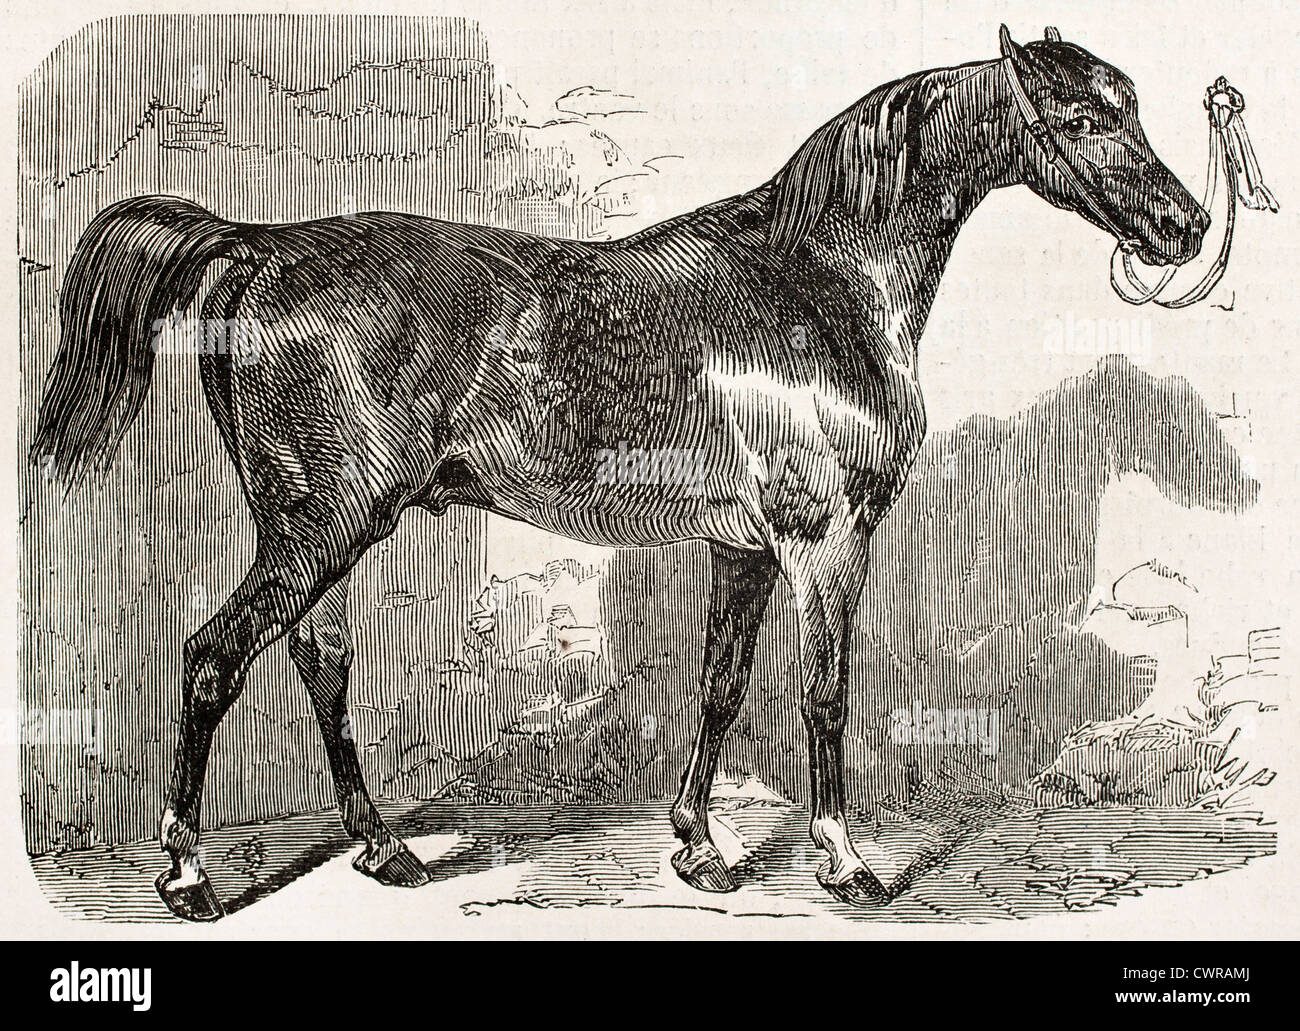 Norman horse in 1852 - Stock Image